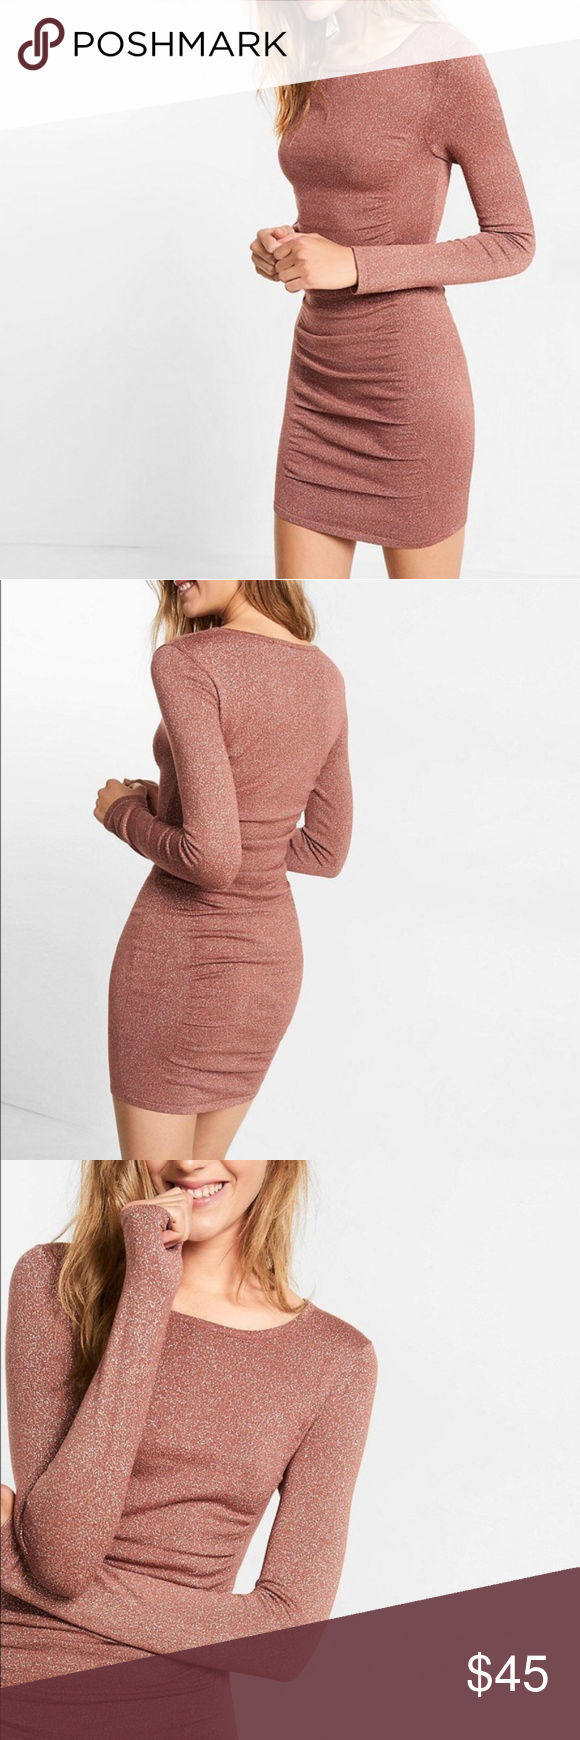 Express ruched sweater dress size S pink rose gold Rose gold sparkle dress sz S, bought in-store 5th ave NYC, worn only 3 times, mint condition perfect no flaws, worn in winter, ID Express Dresses Long Sleeve